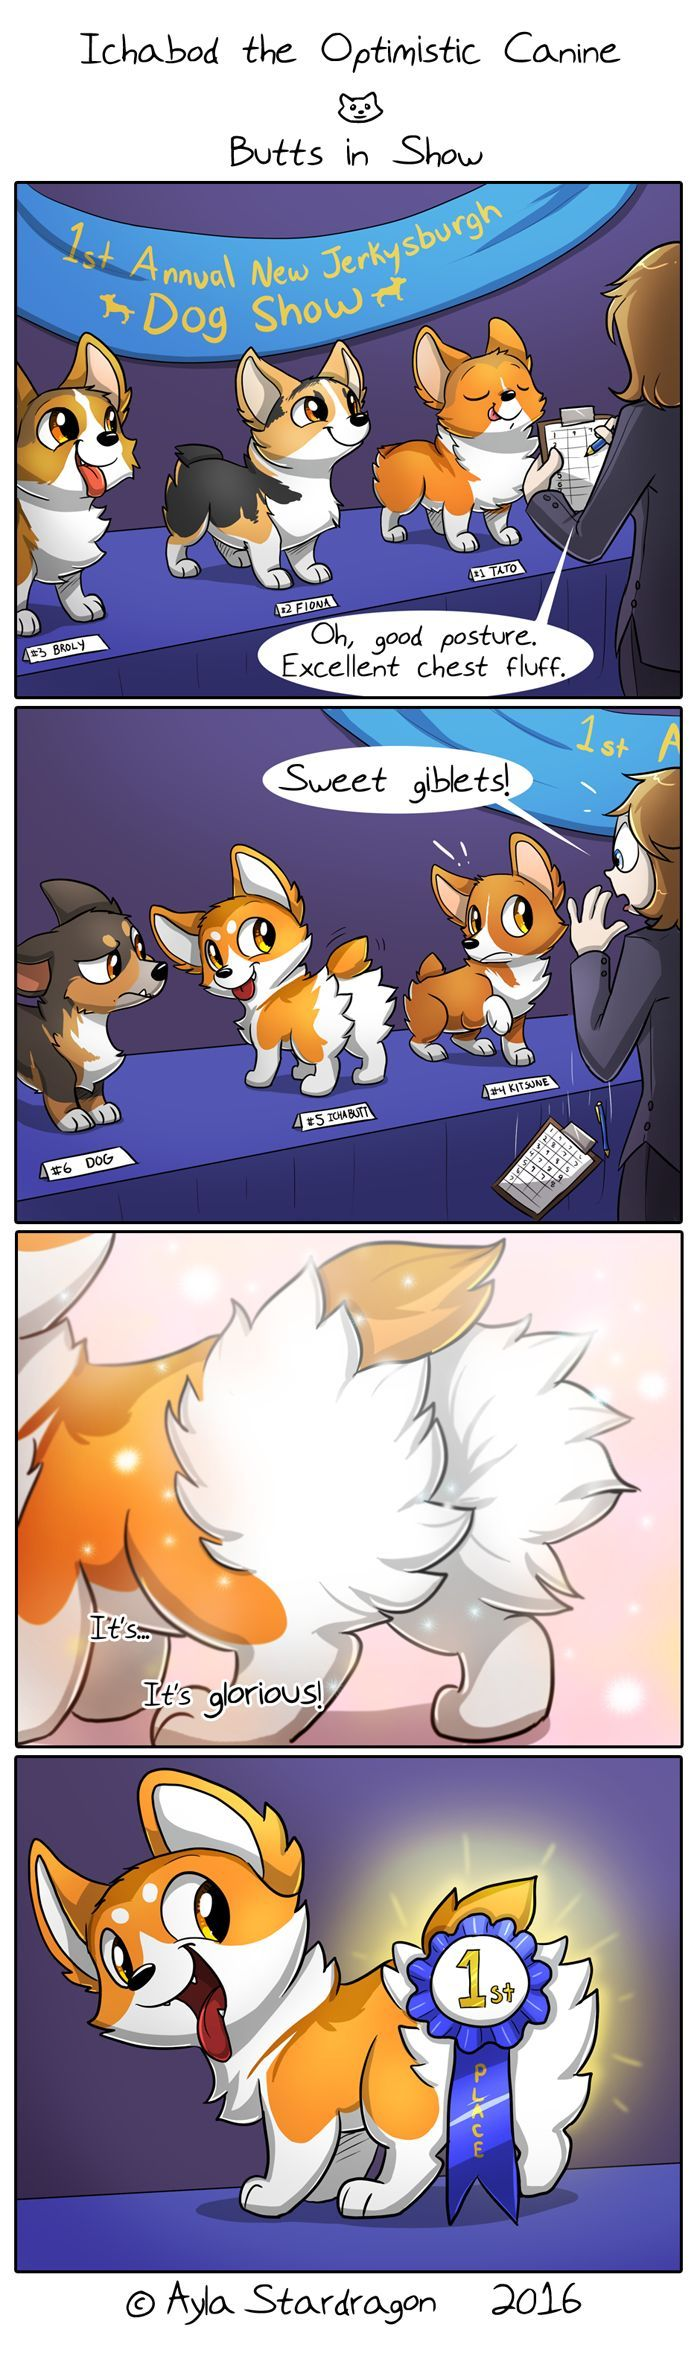 Ichabod the Optimistic Canine :: Butts in Show | Tapastic Comics - image 1